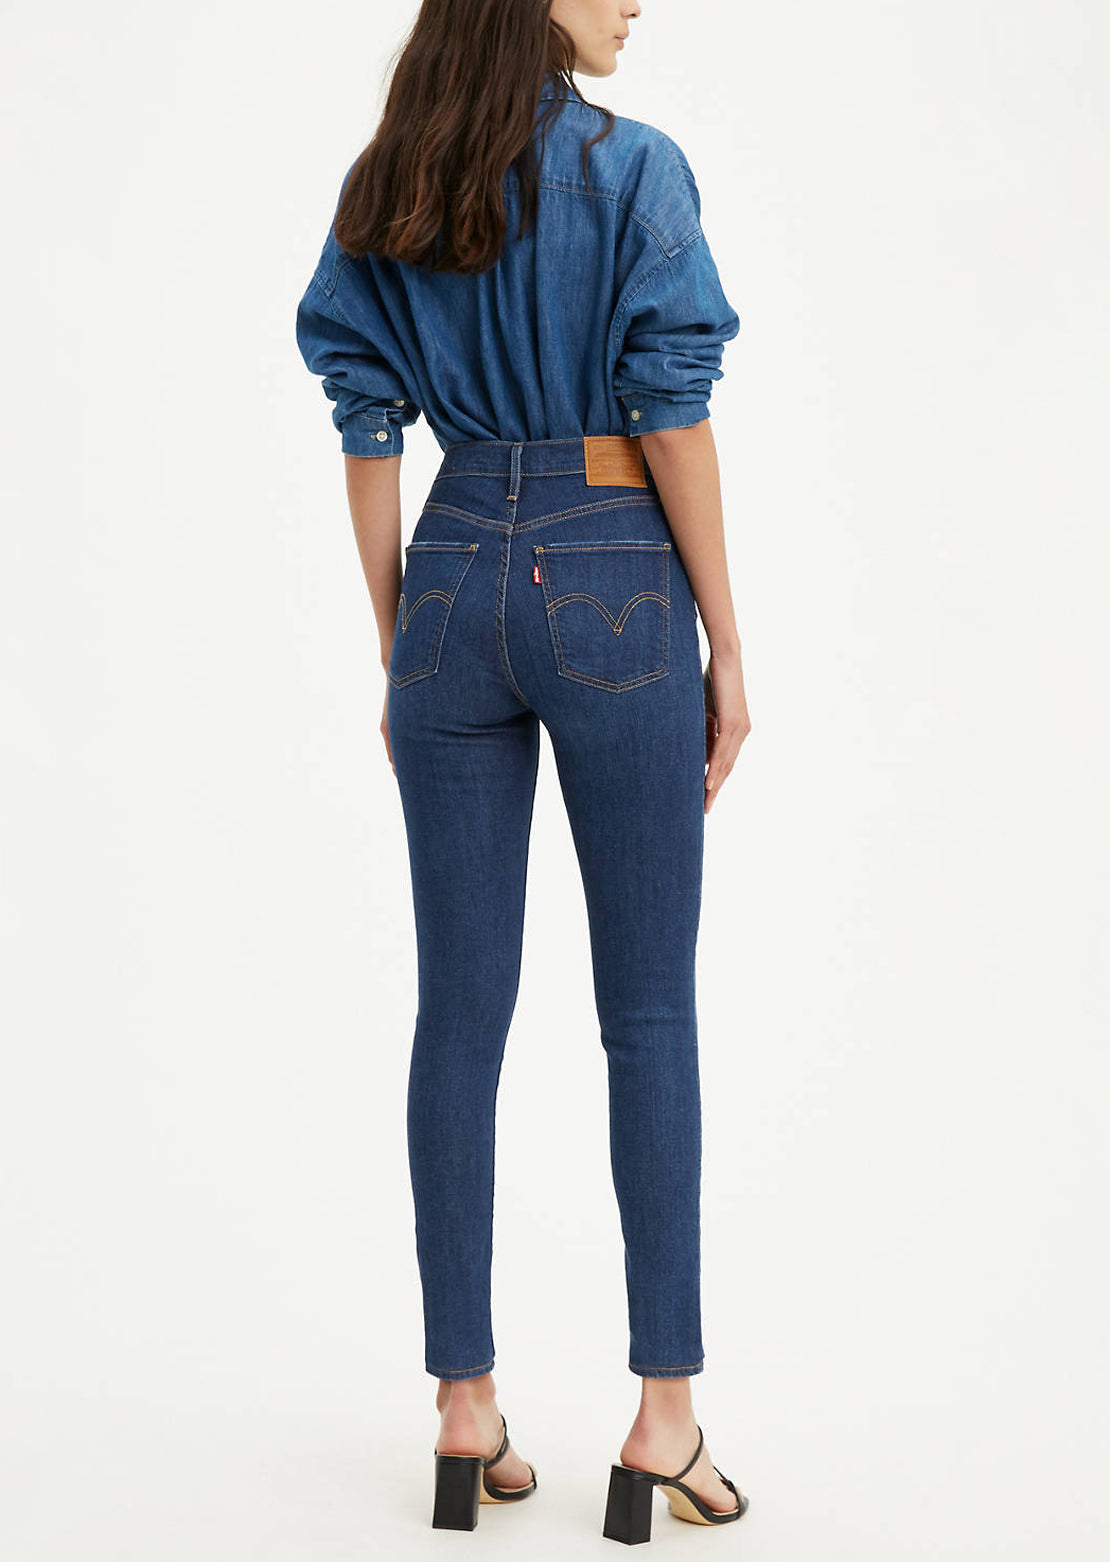 Levi's Women's Mile High Super Skinny Jeans Catch Me Outside